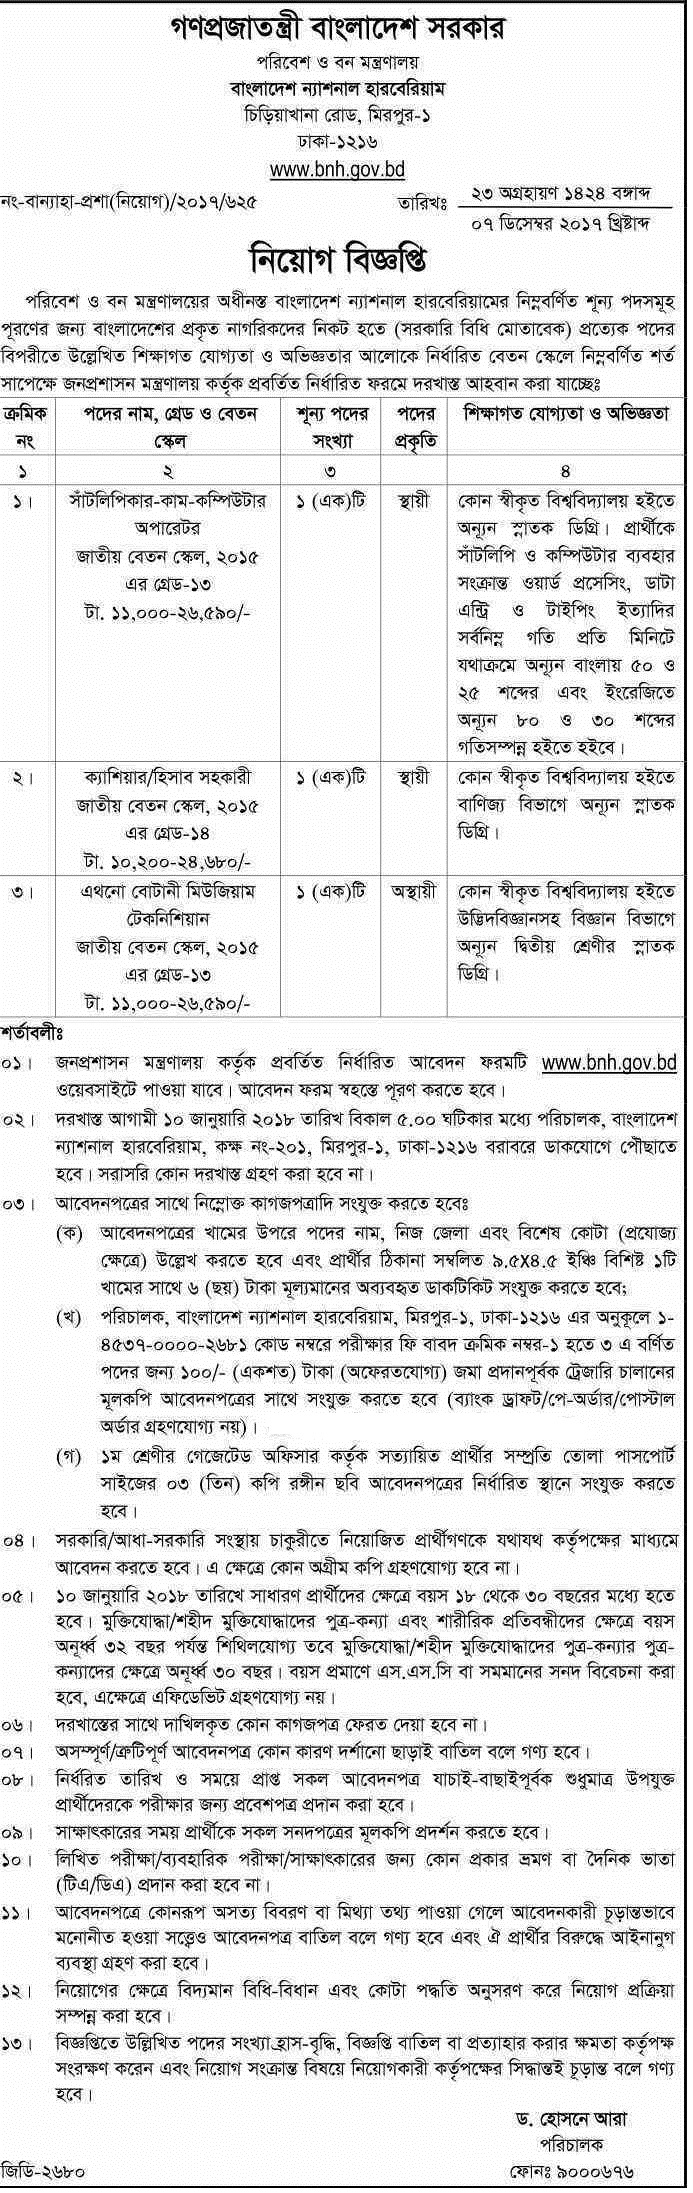 Bangladesh National Herbarium BNH job circular2017